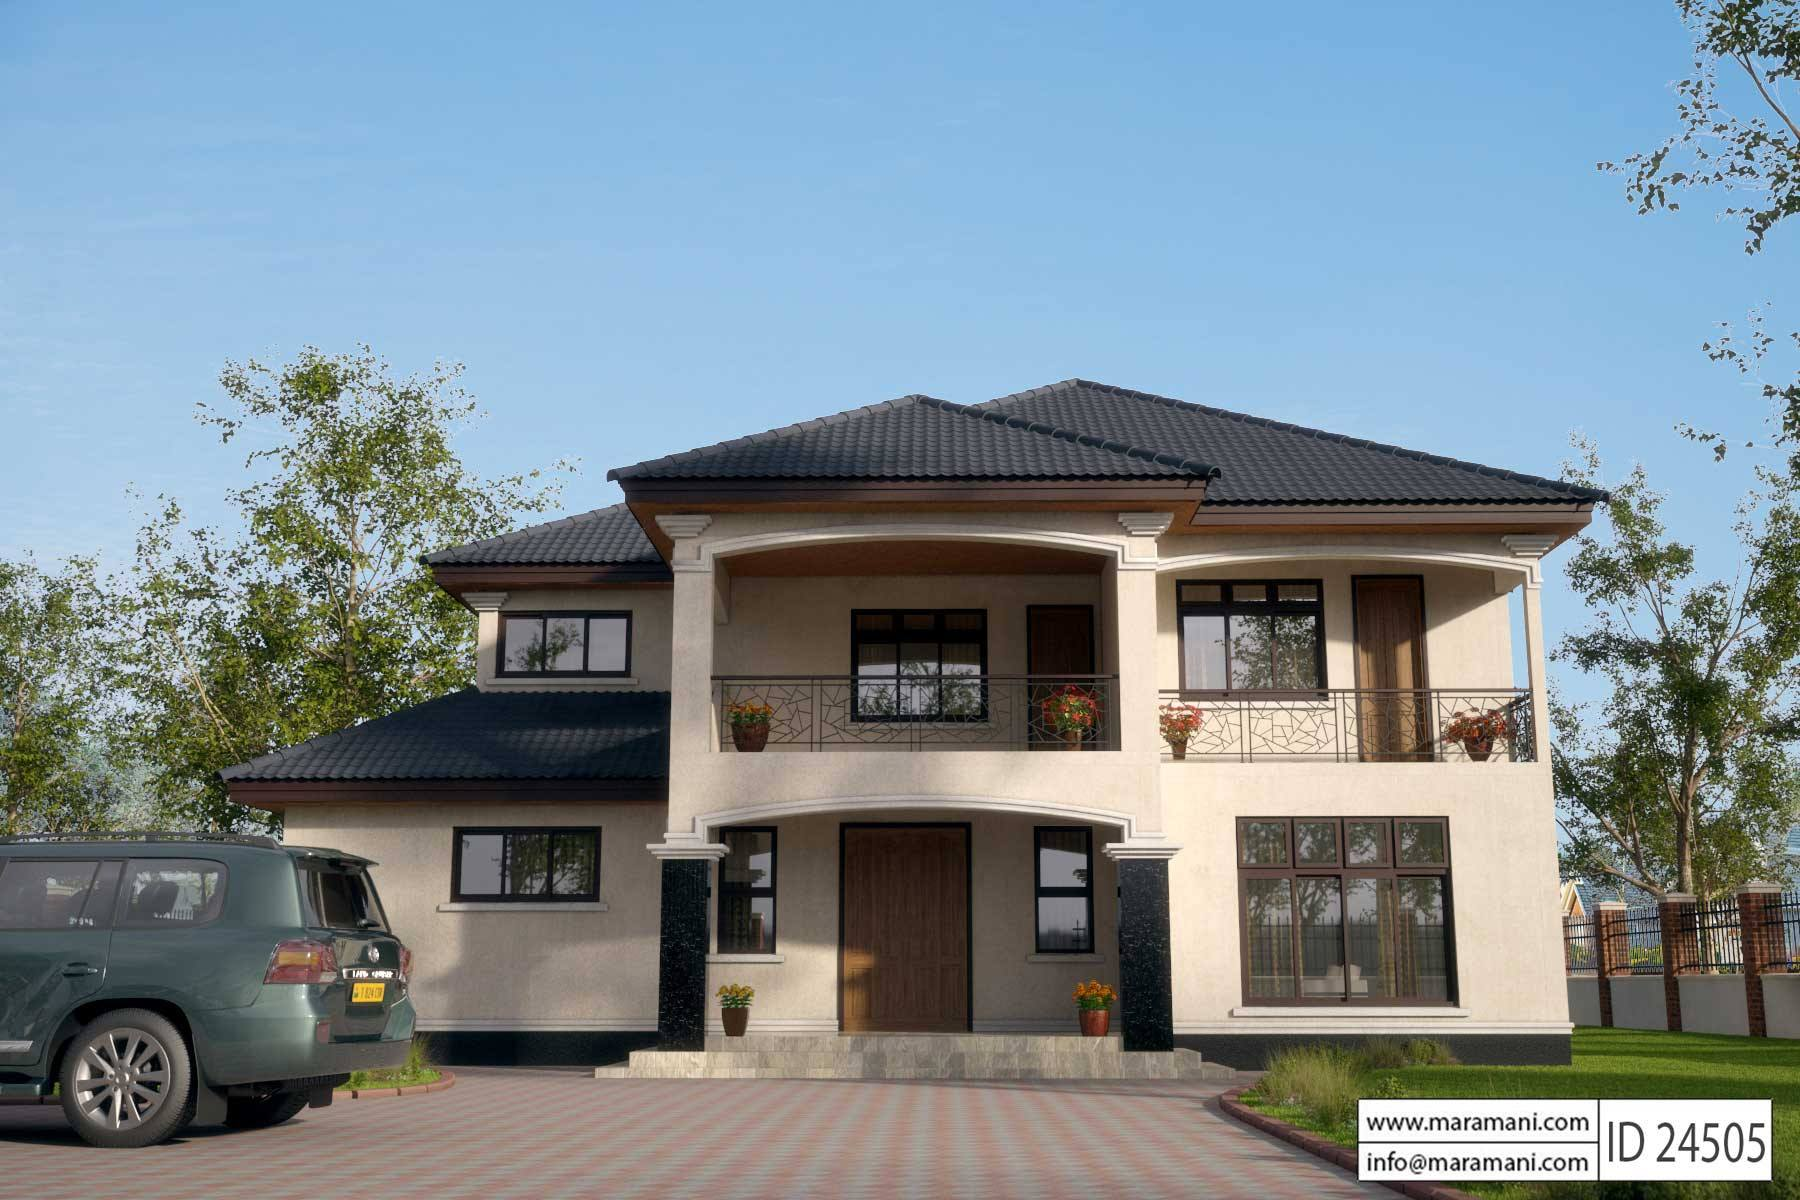 Modern House Plans & Designs for Africa | Maramani.com